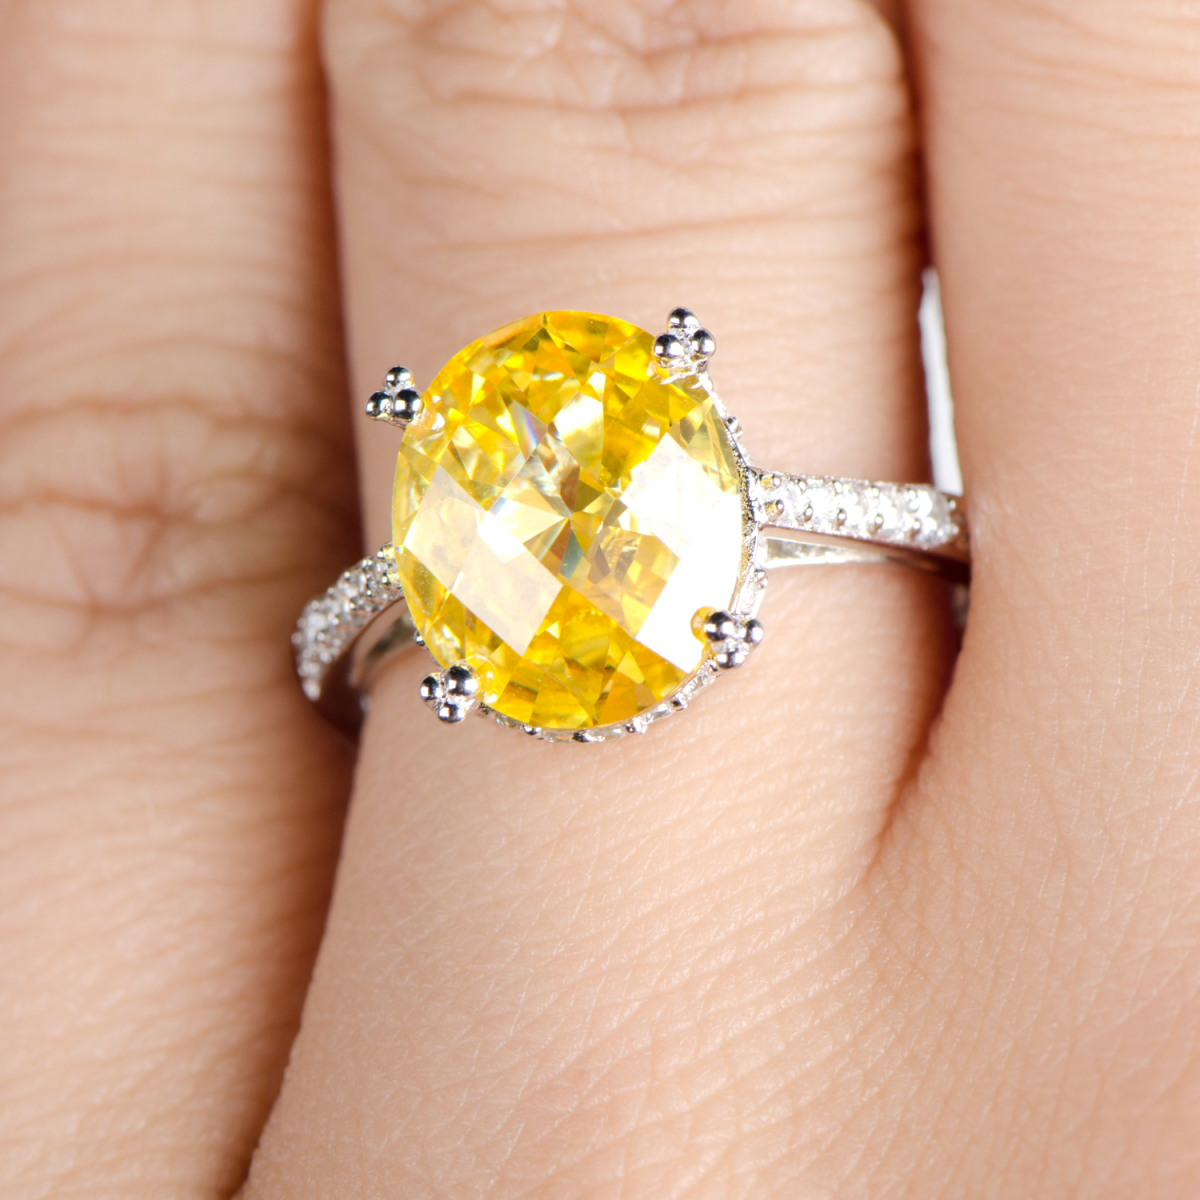 Canary CZ Oval Cut Engagement Ring